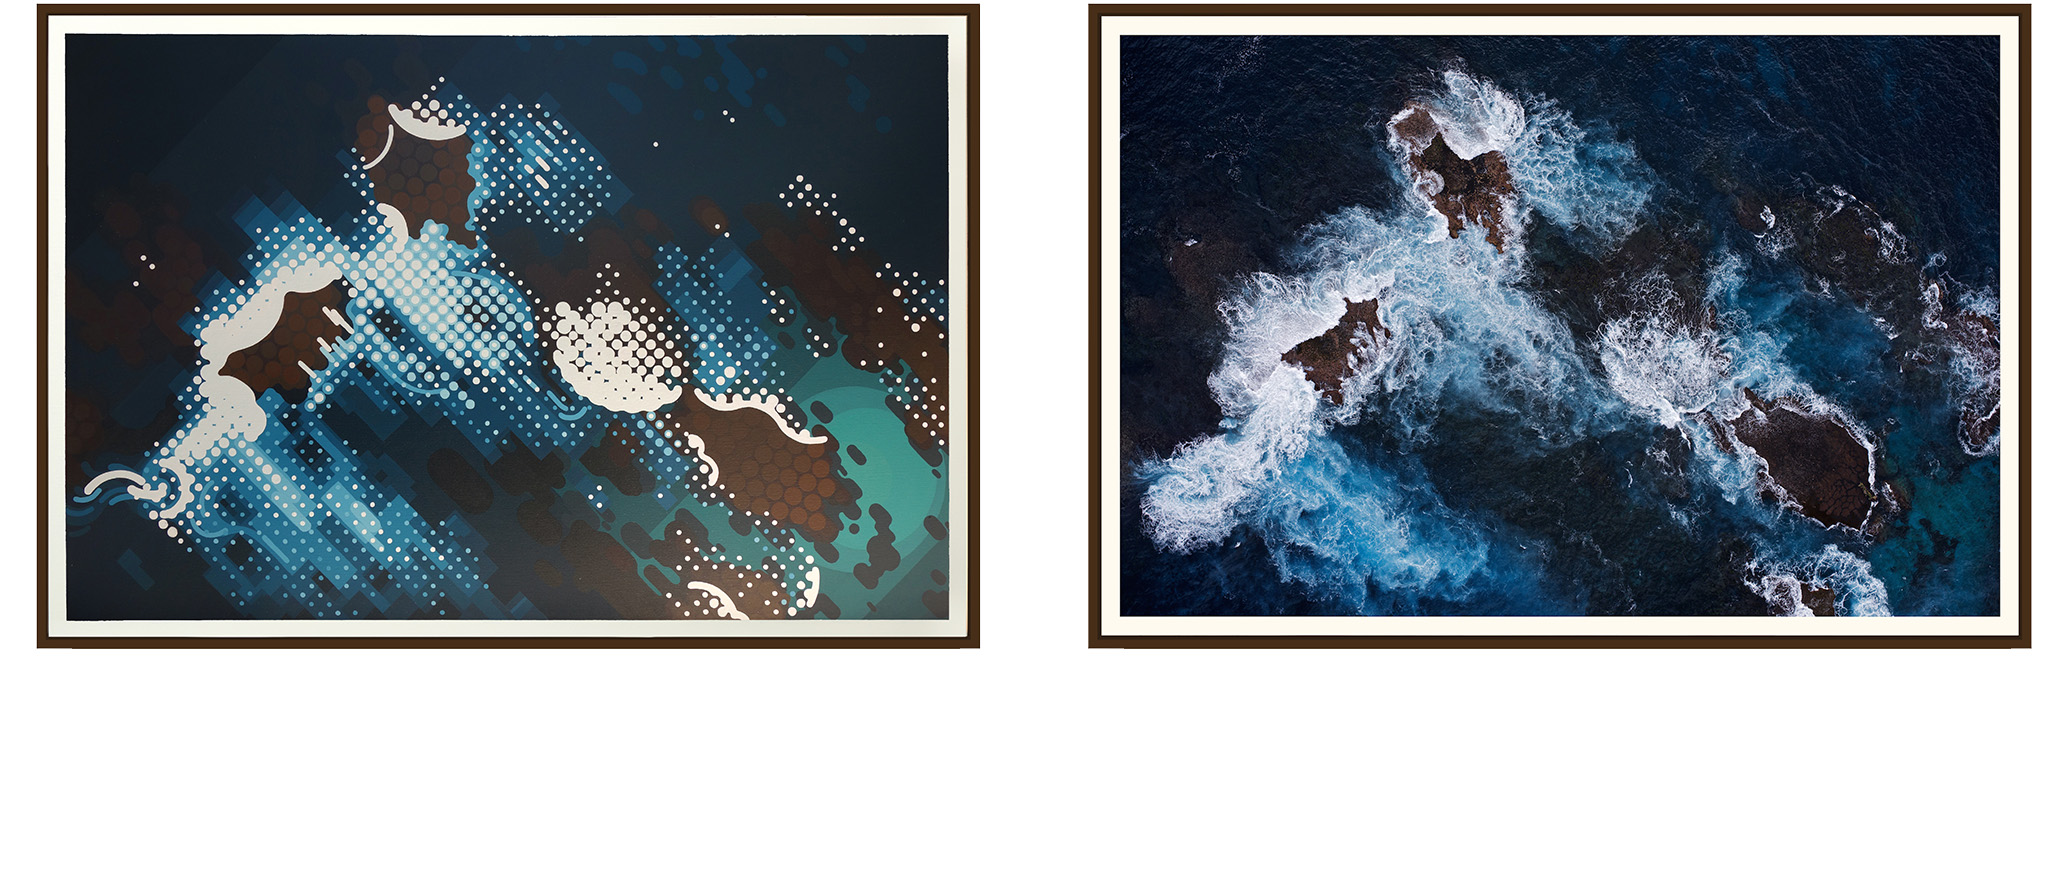 Left: 'South West End' by Amok Island - acrylics on canvas 154cm x 104cm Right: 'South West End' by Jarrad Seng - giclee photographic print on canvas 154cm x 104cm